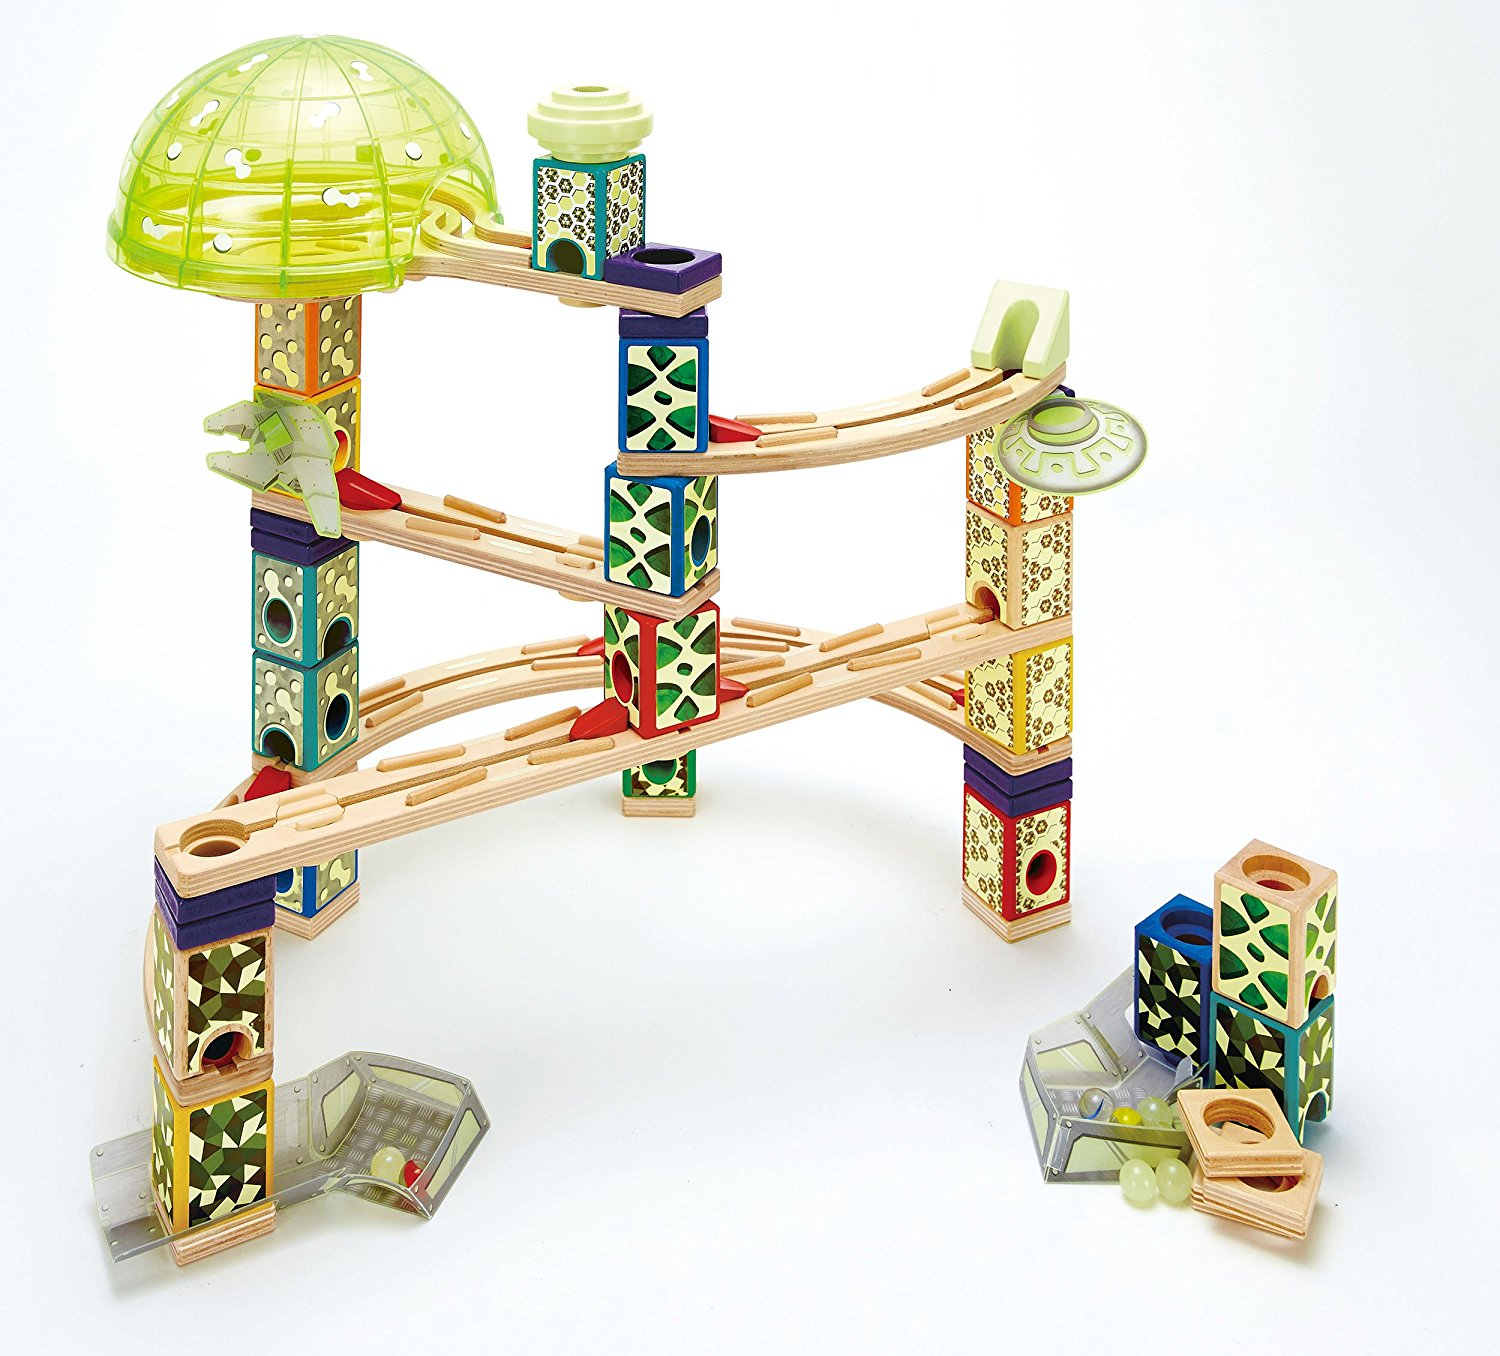 Space City Wooden Glow in the Dark Marble Run